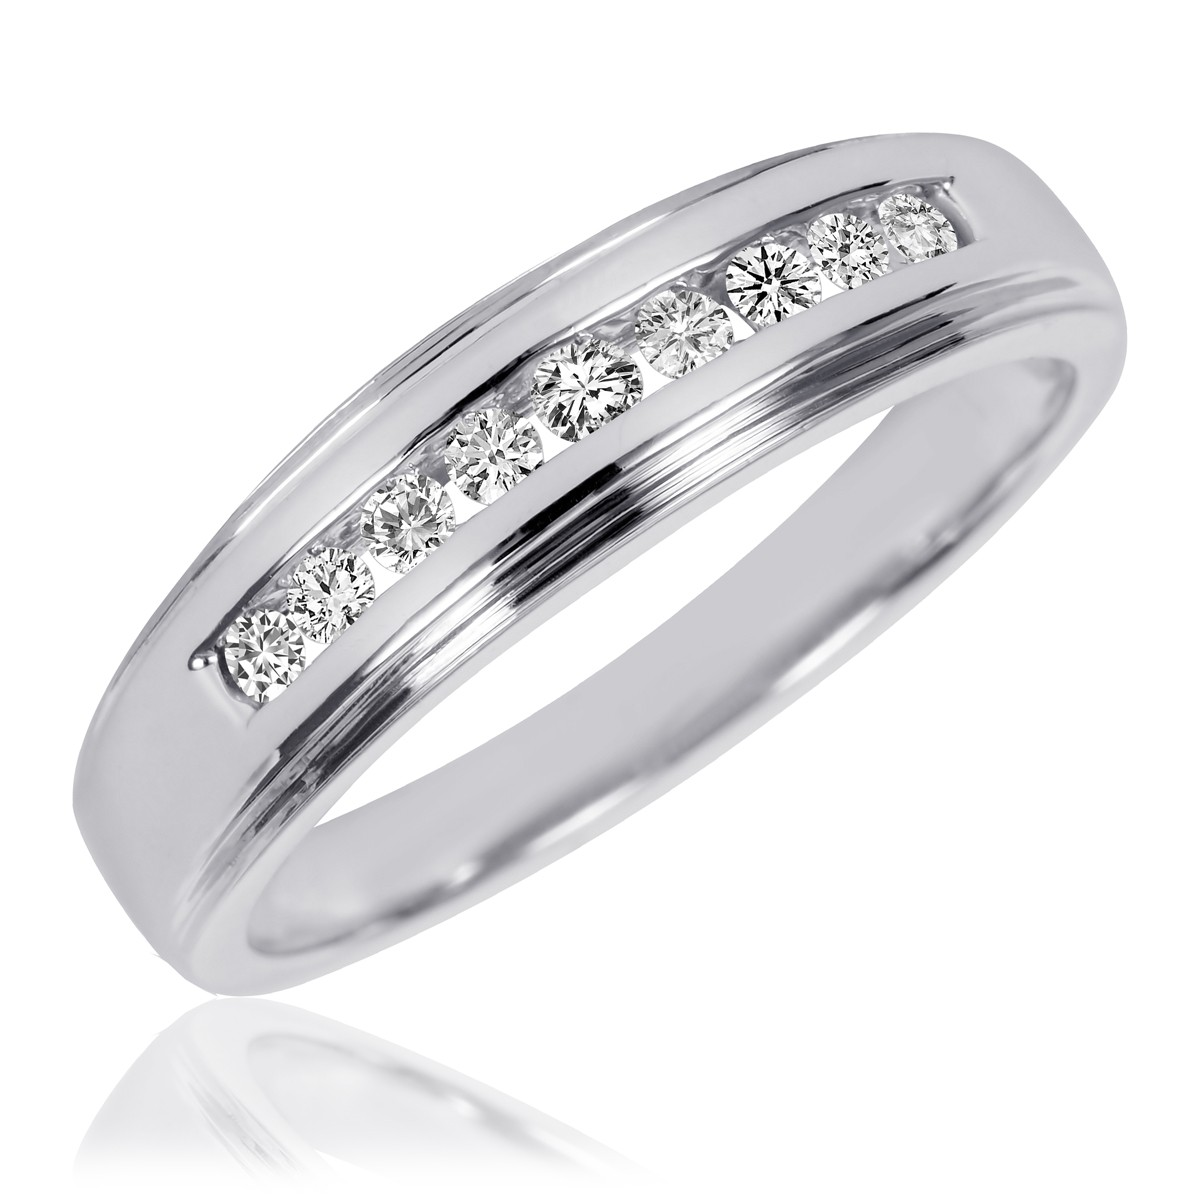 1/5 CT. T.W. Diamond Men's Wedding Ring 10K White Gold